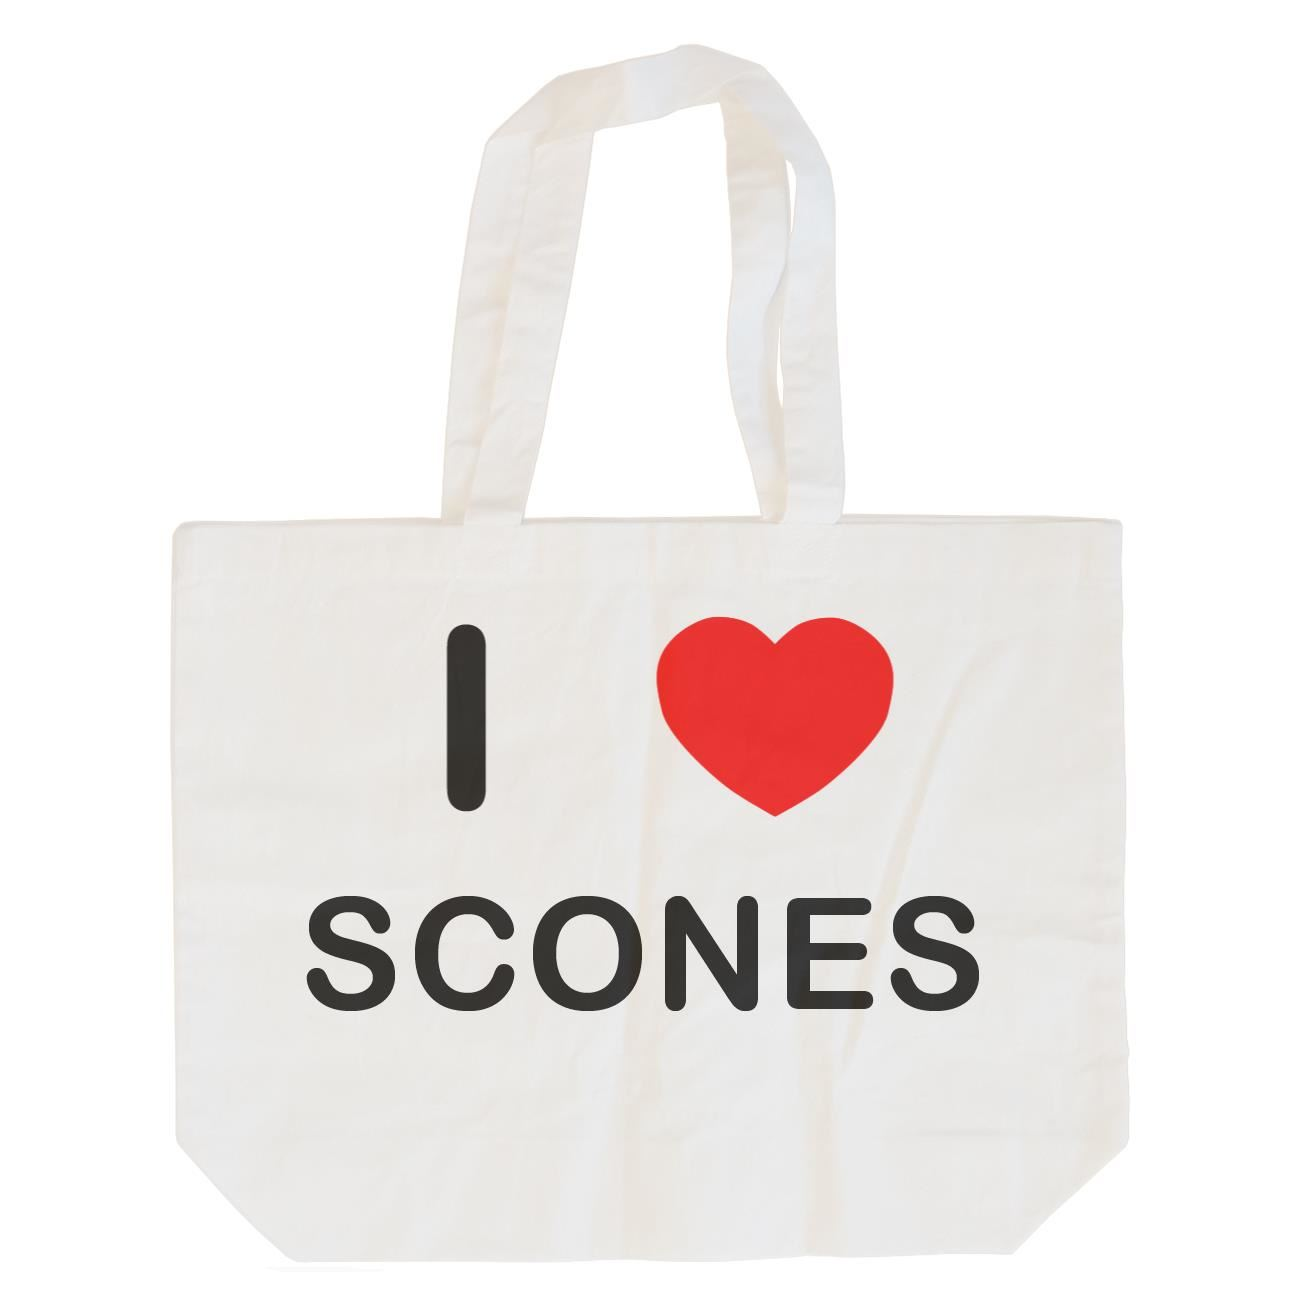 I Love Scones - Cotton Bag | Size choice Tote, Shopper or Sling